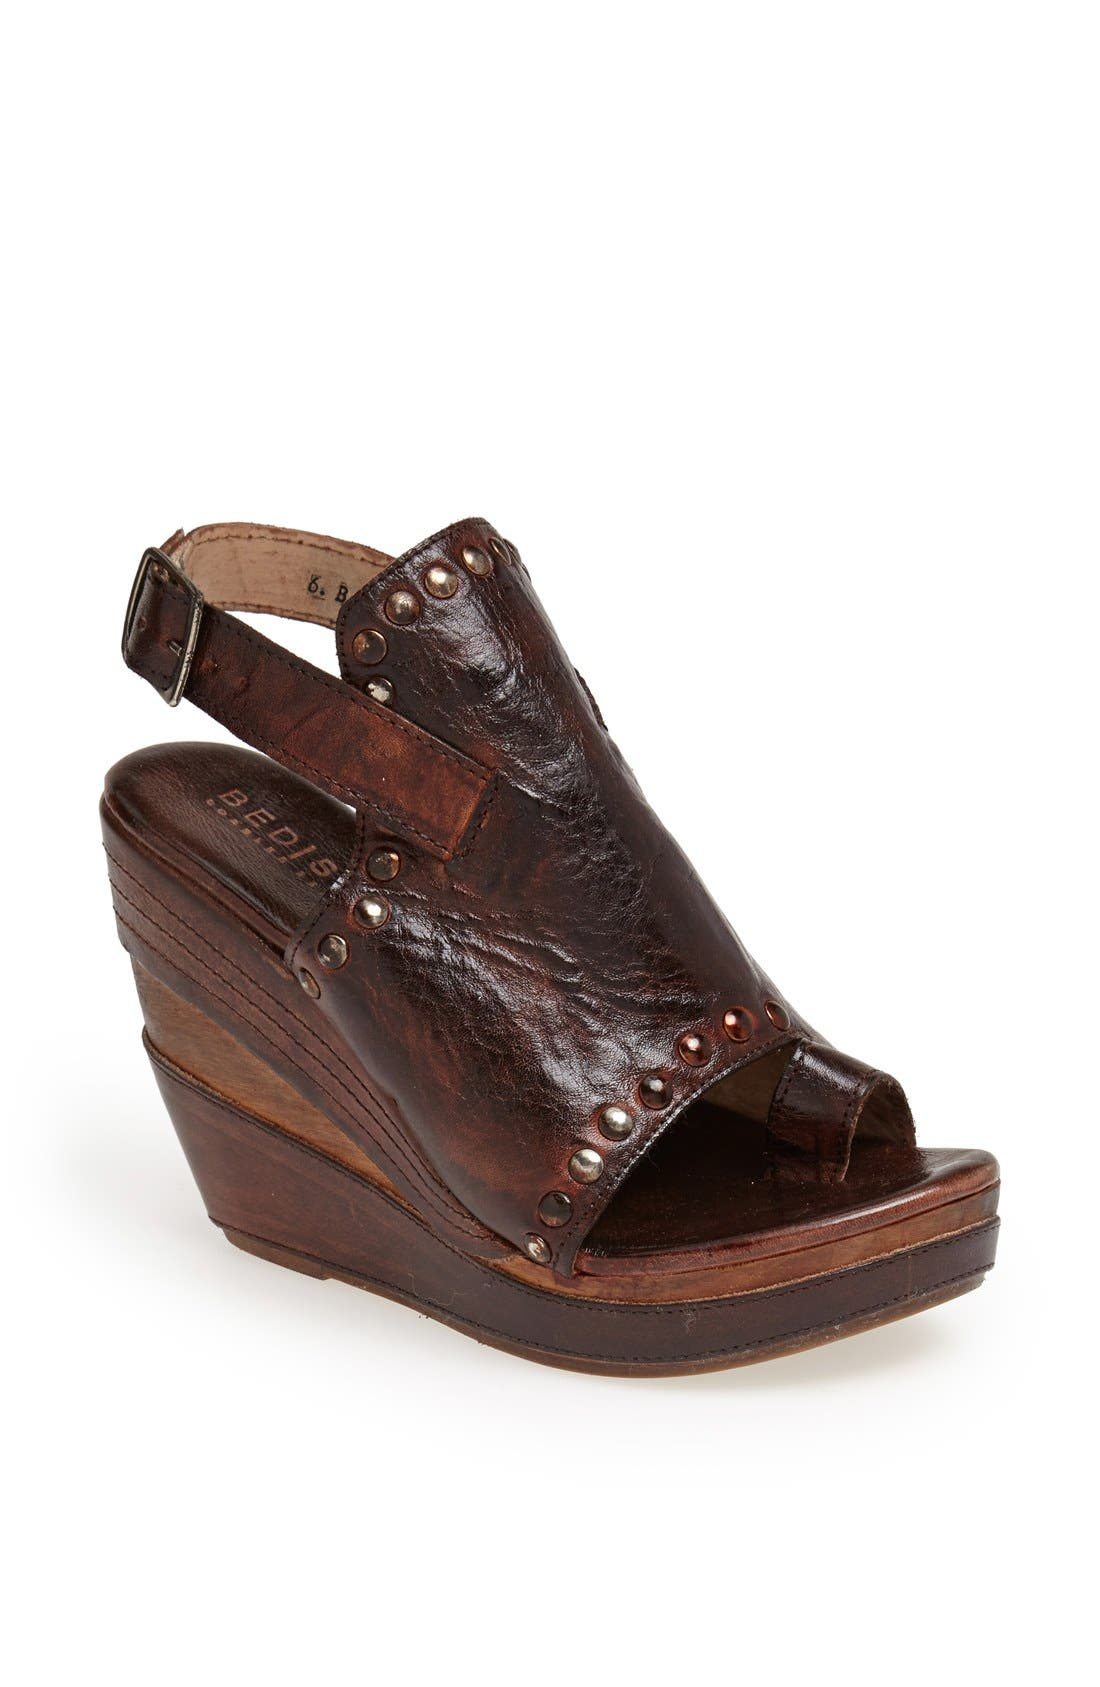 Main Image - Bed Stu 'Joann' Leather Sandal